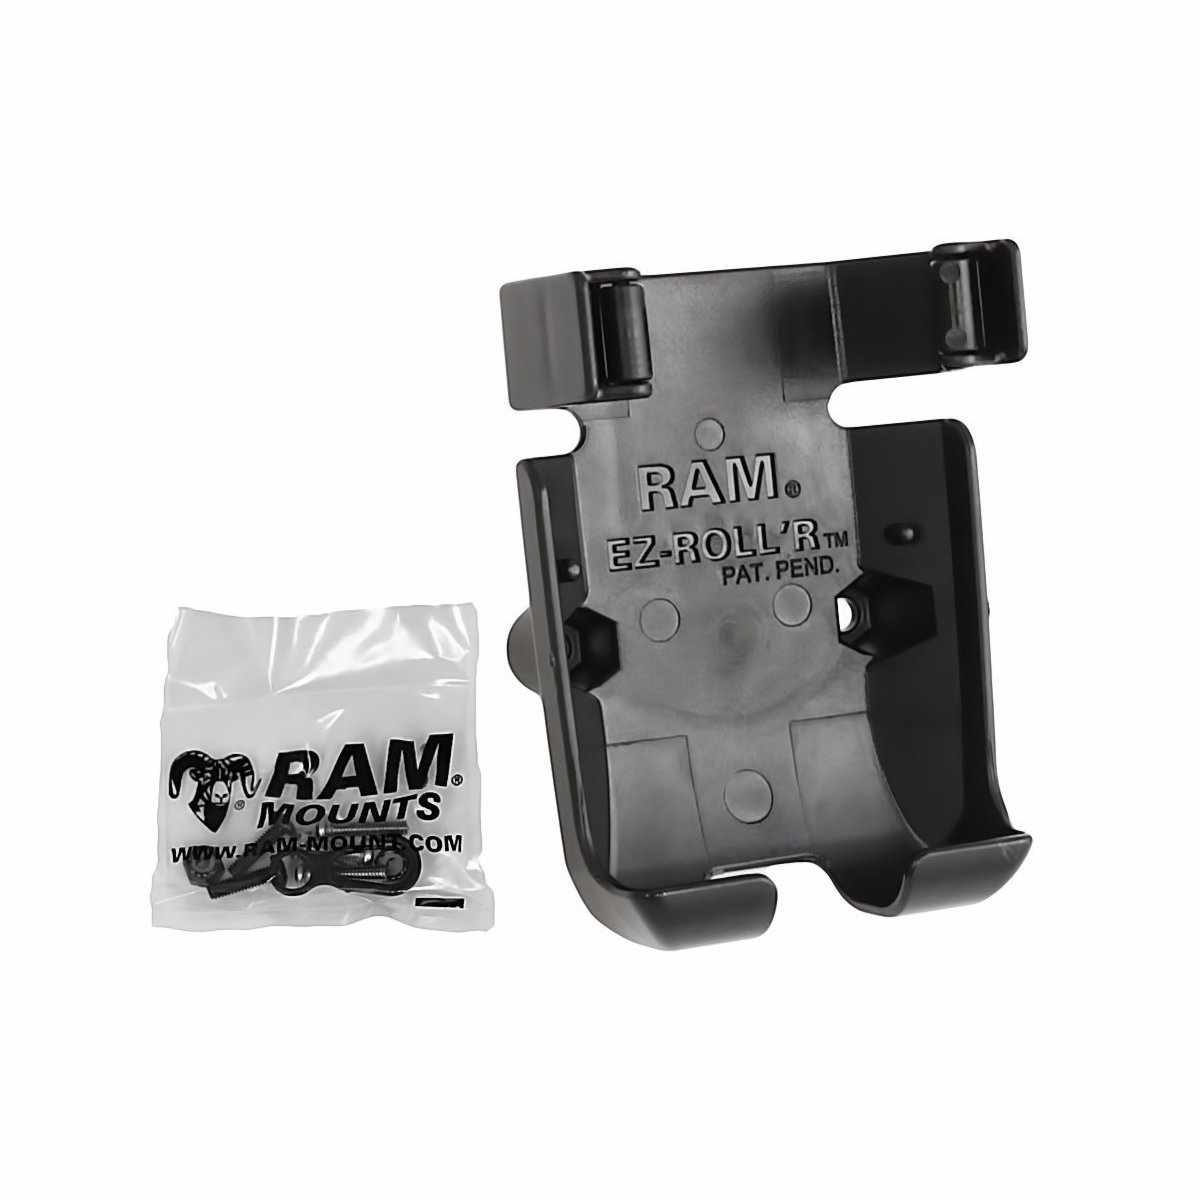 RAM Holder for Garmin GPSMAP 78 (RAM-HOL-GA40U) - Modest Mounts